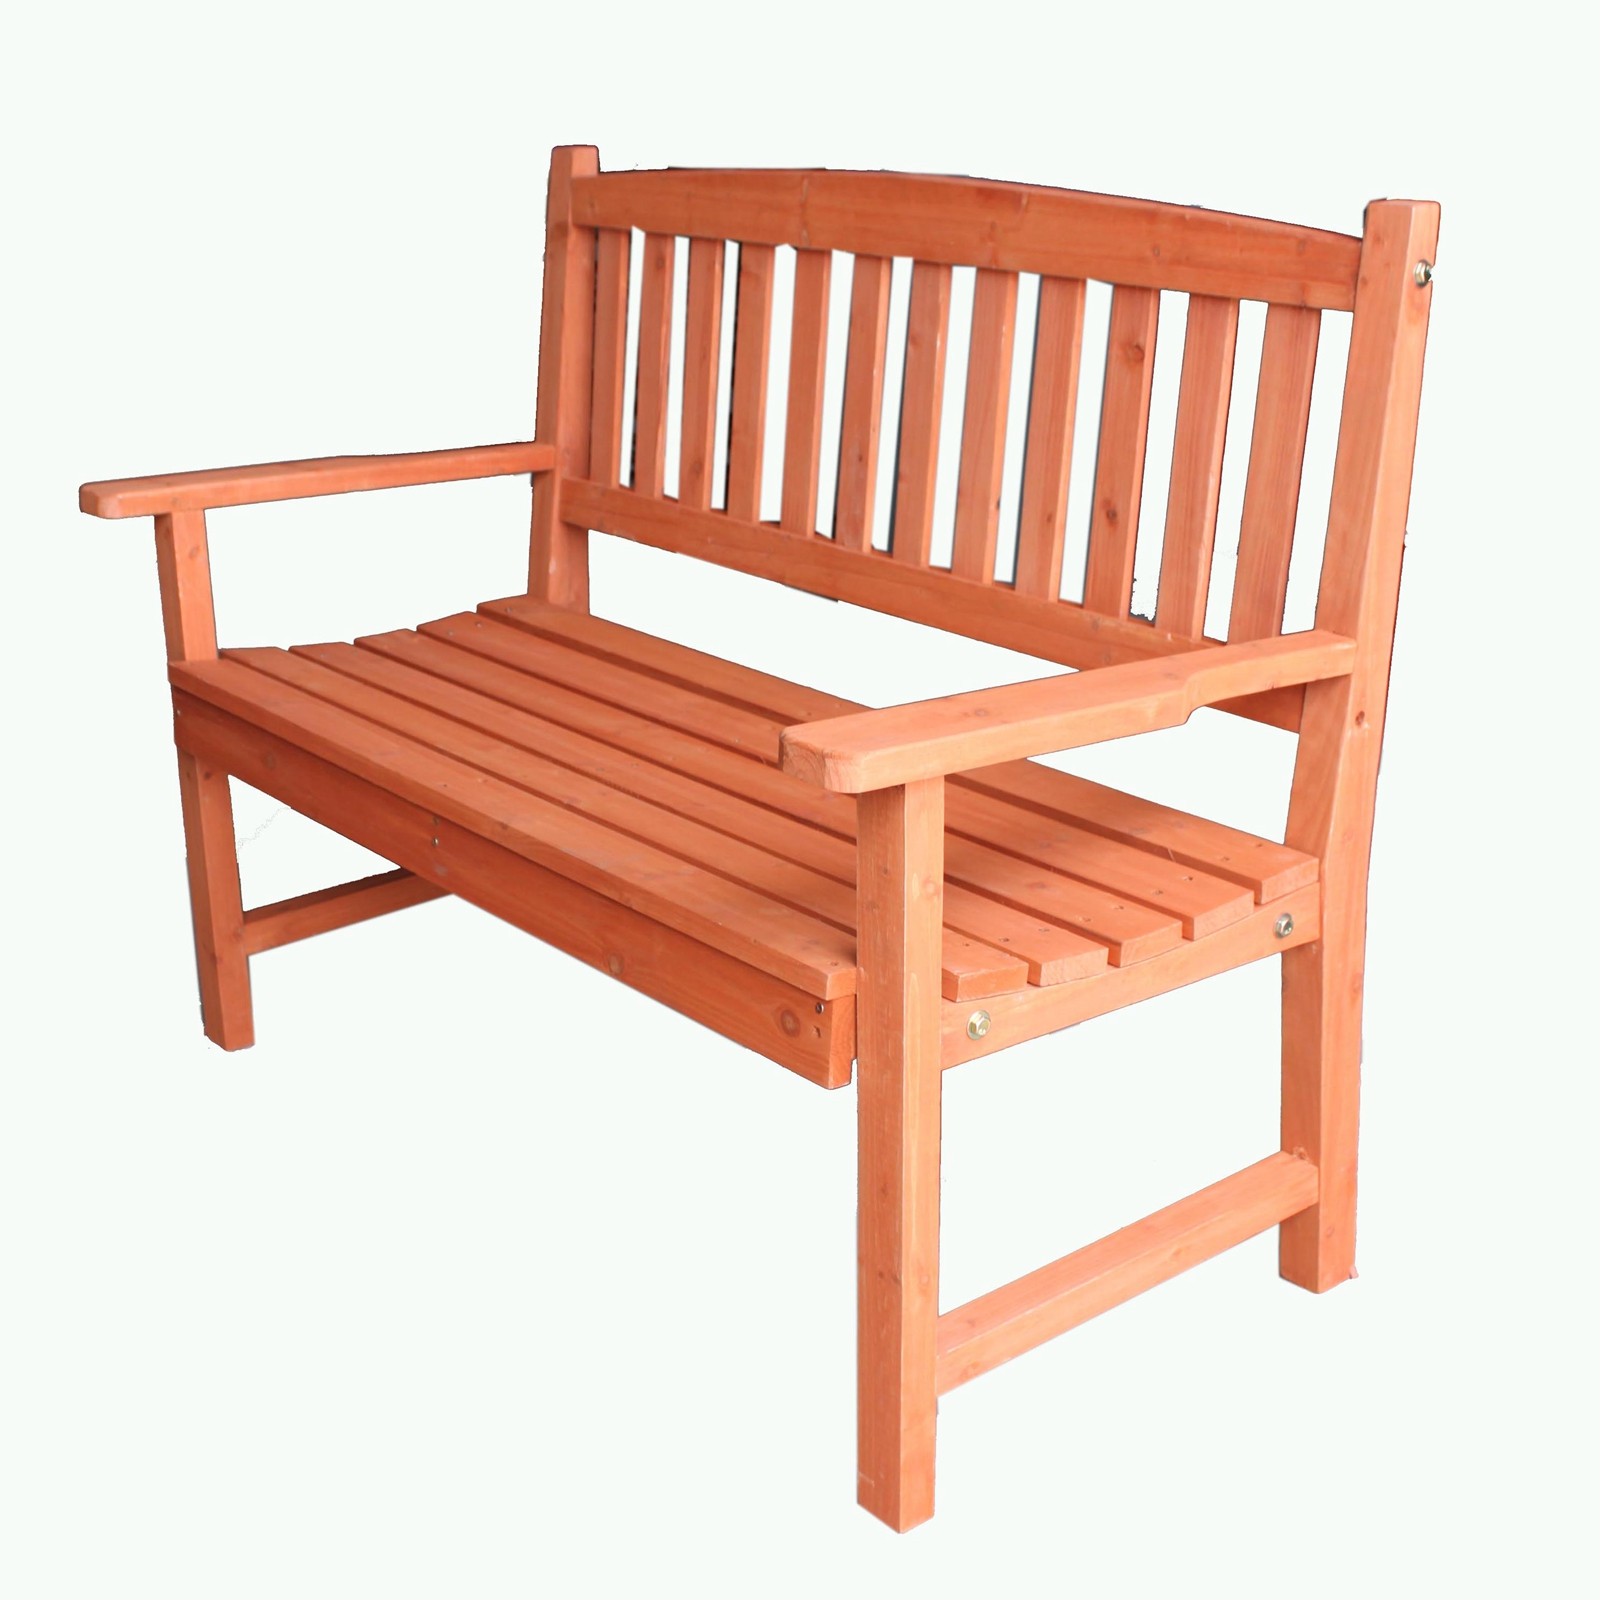 Outdoor Bench Seat 28 Images Outdoor 3 Seater Wooden